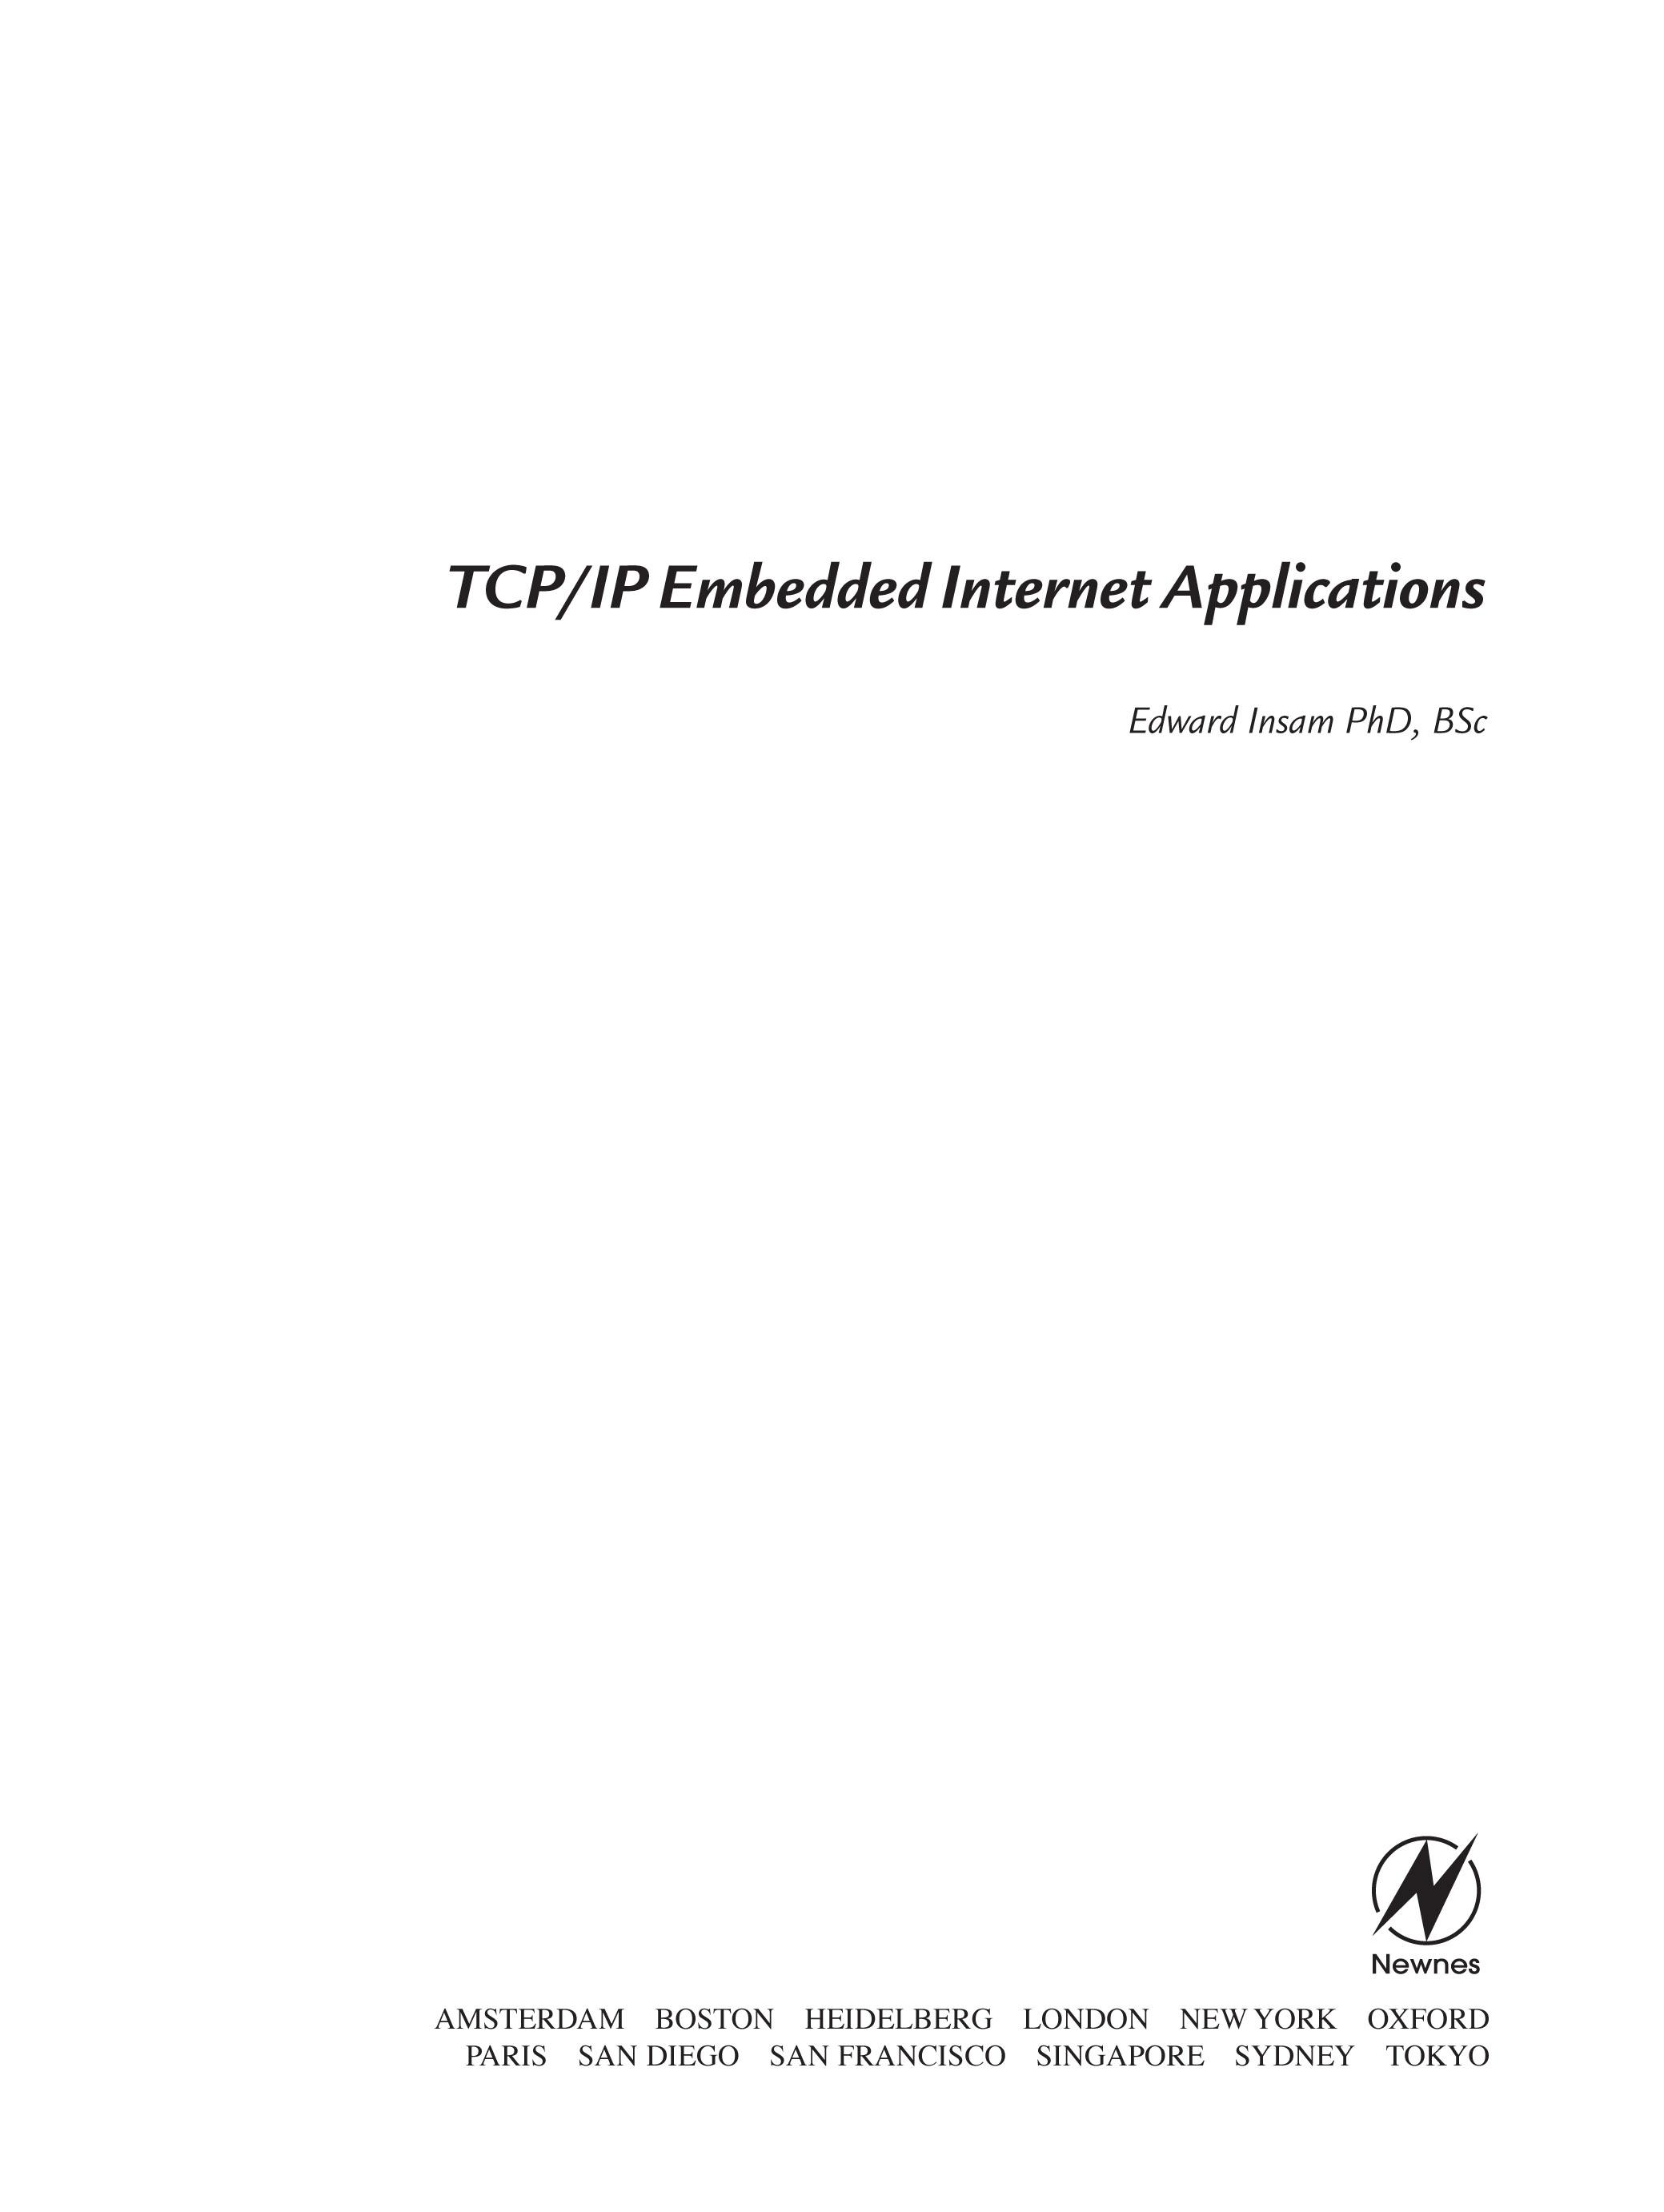 TCP/IP Embedded Internet Applications EB9780080474557